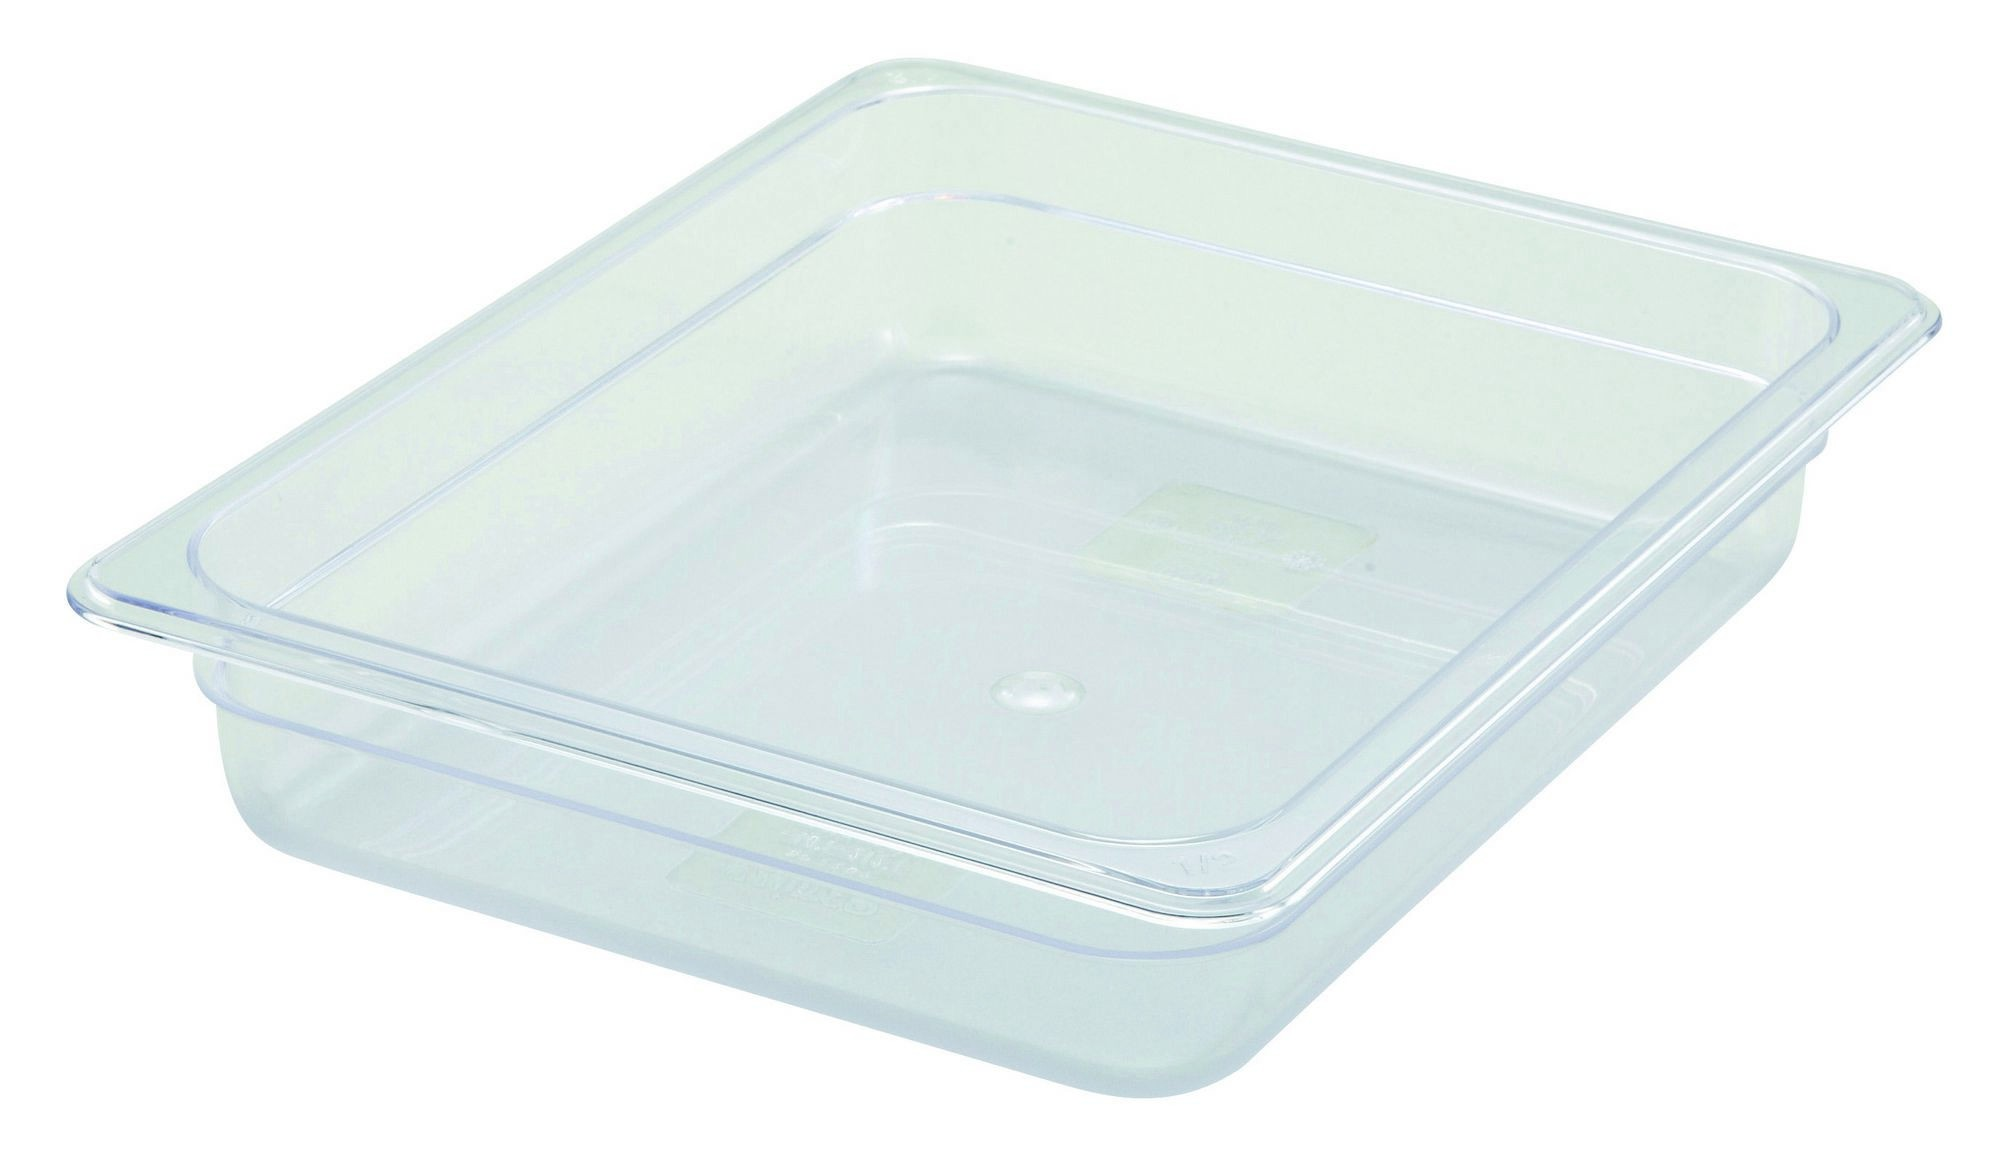 Polycarbonate NSF Half-Size Food Pan - 2-1/2 Deep